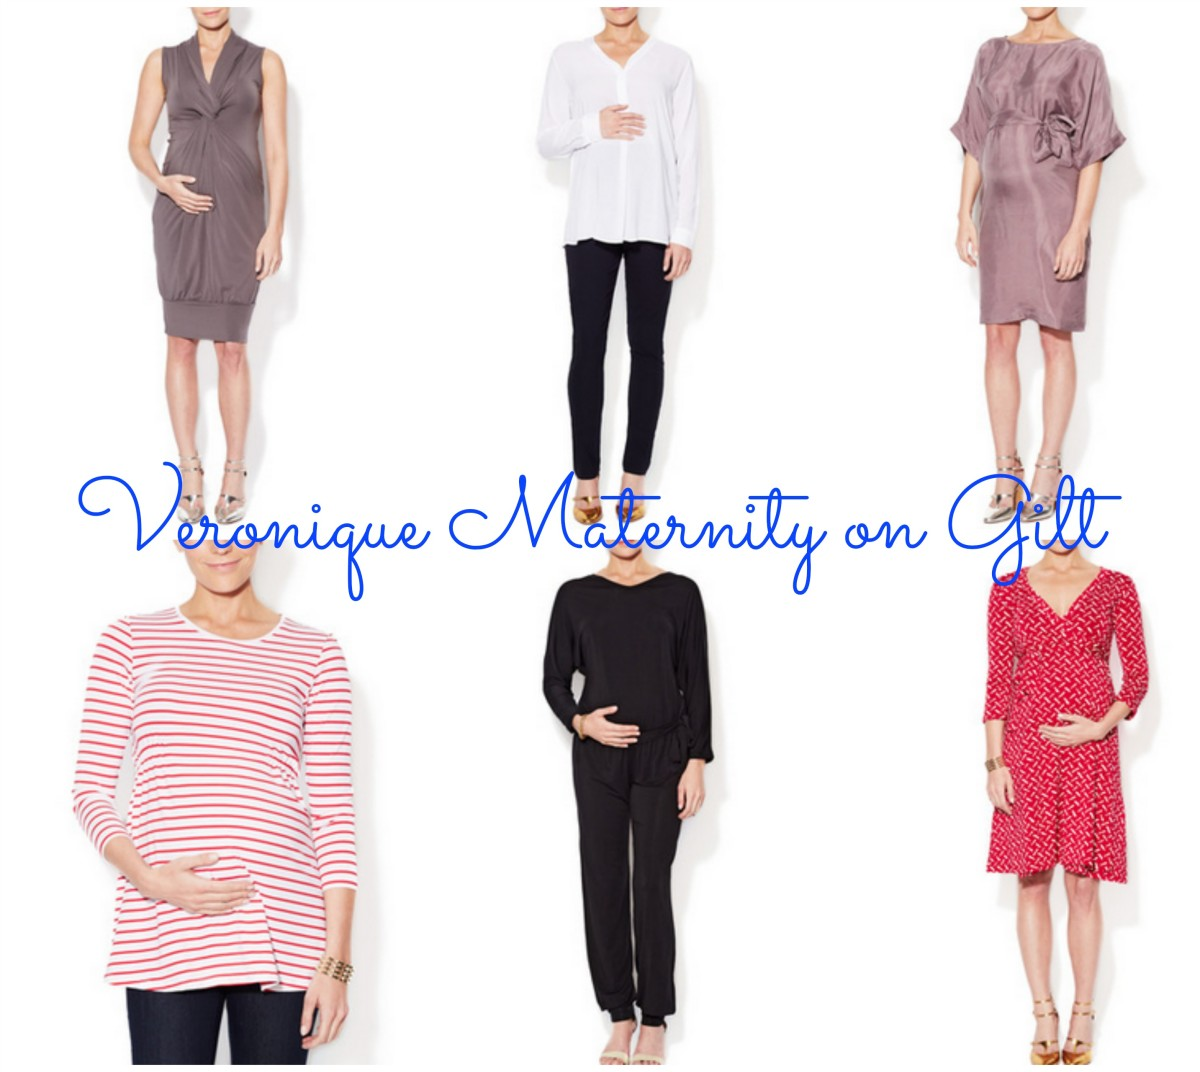 veronique gilt maternity